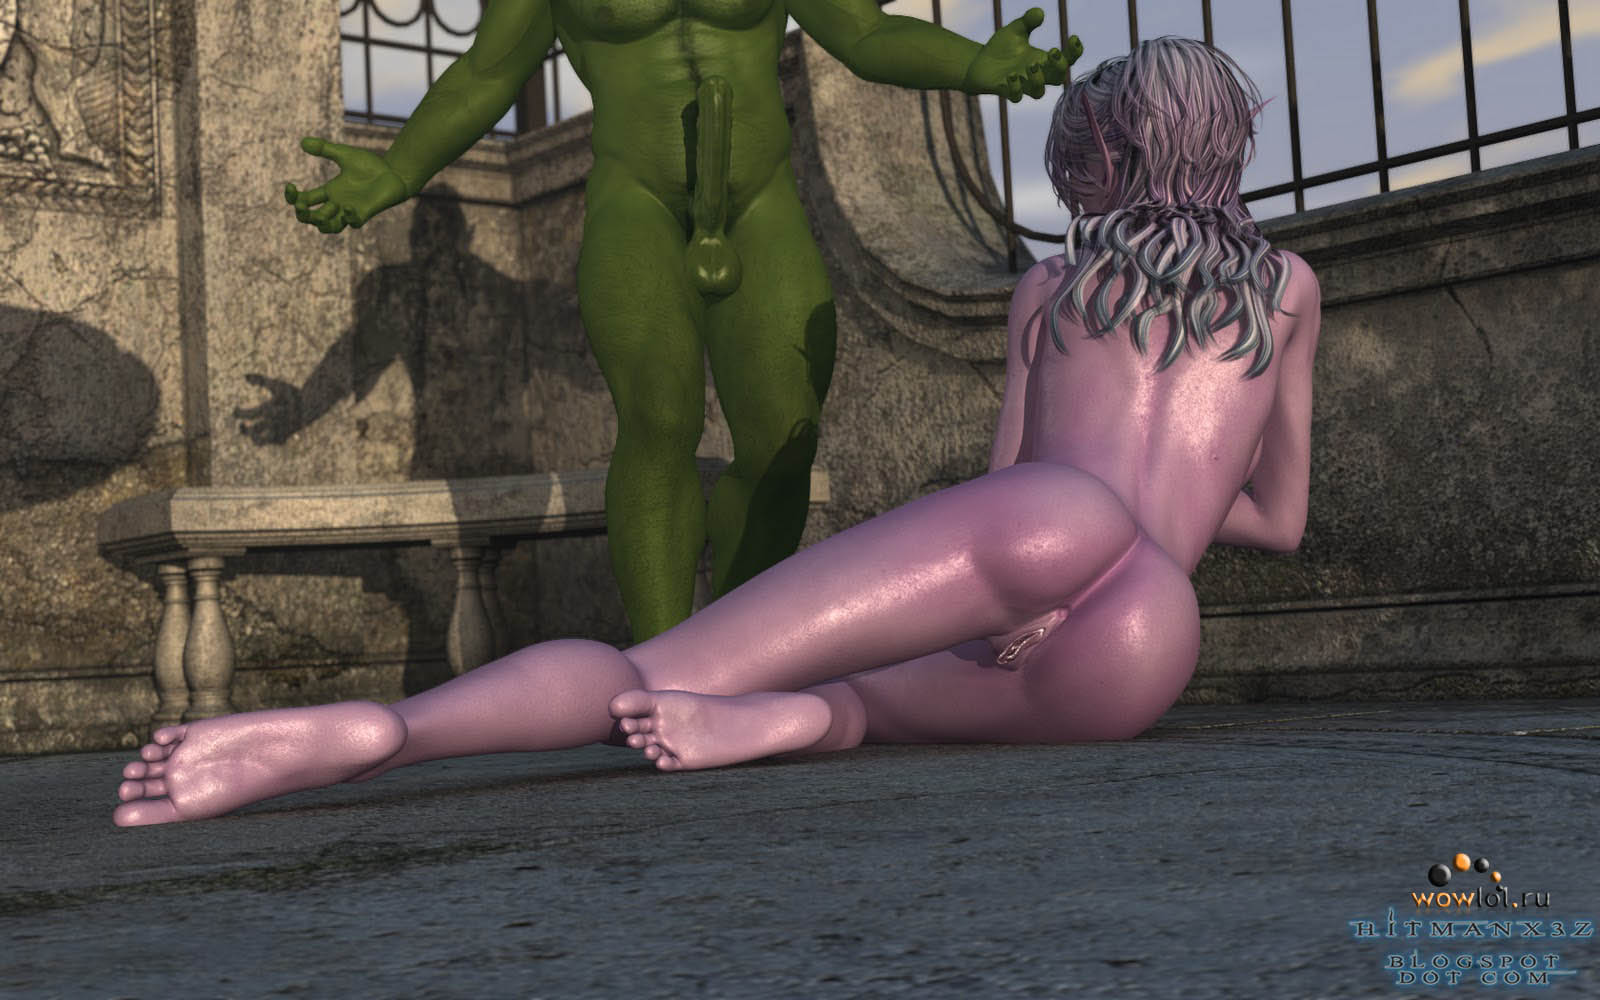 3d World of Warcraft porn 2 0 adult video